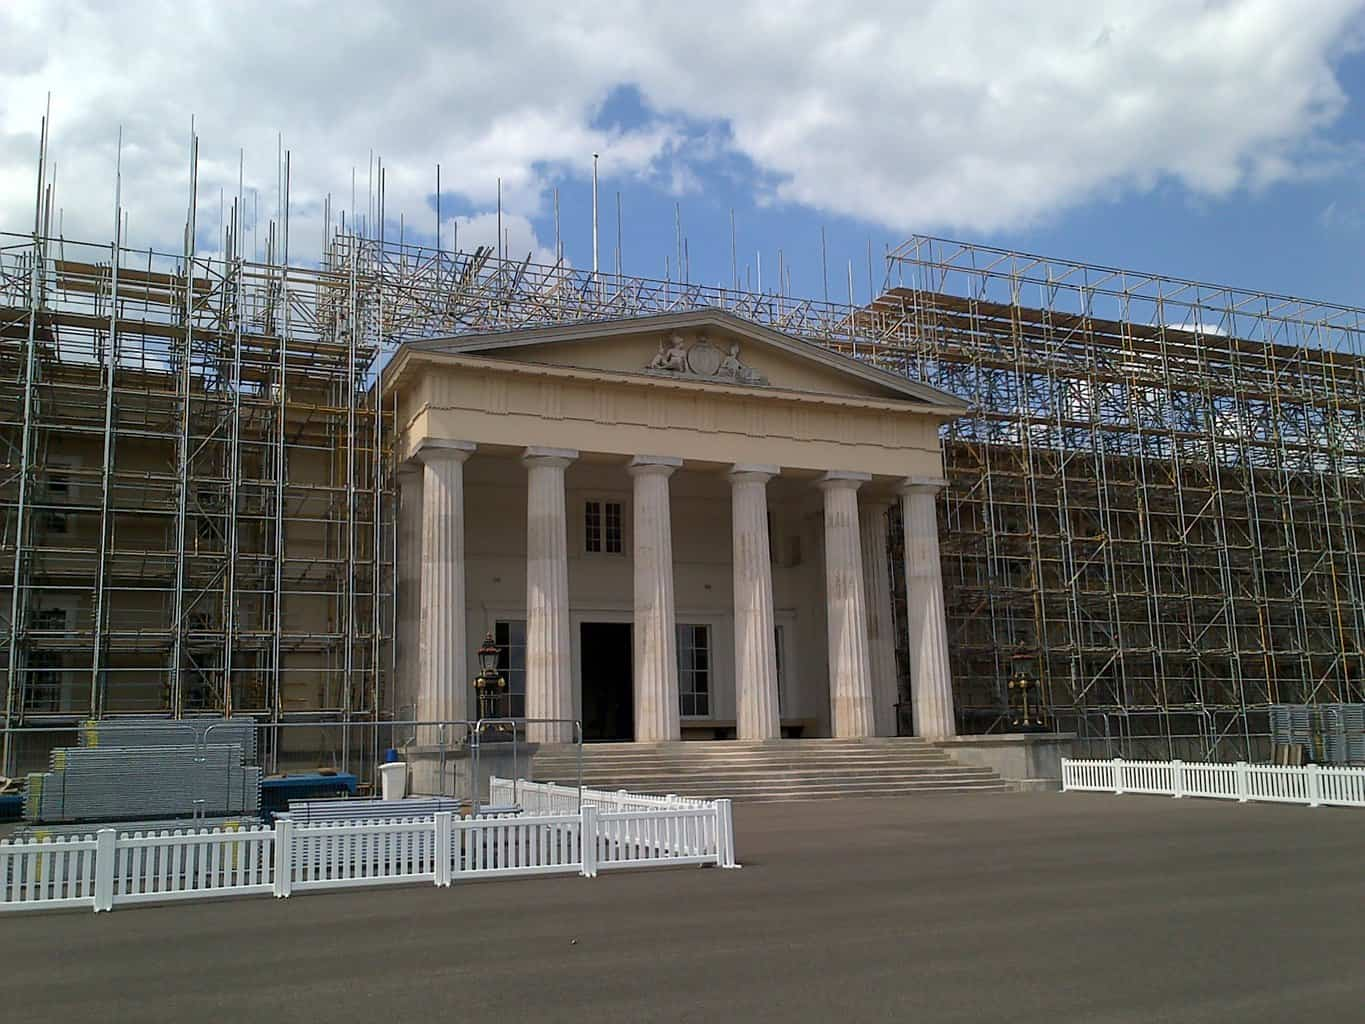 Enigma industrial services at Sandhurst Military Academy